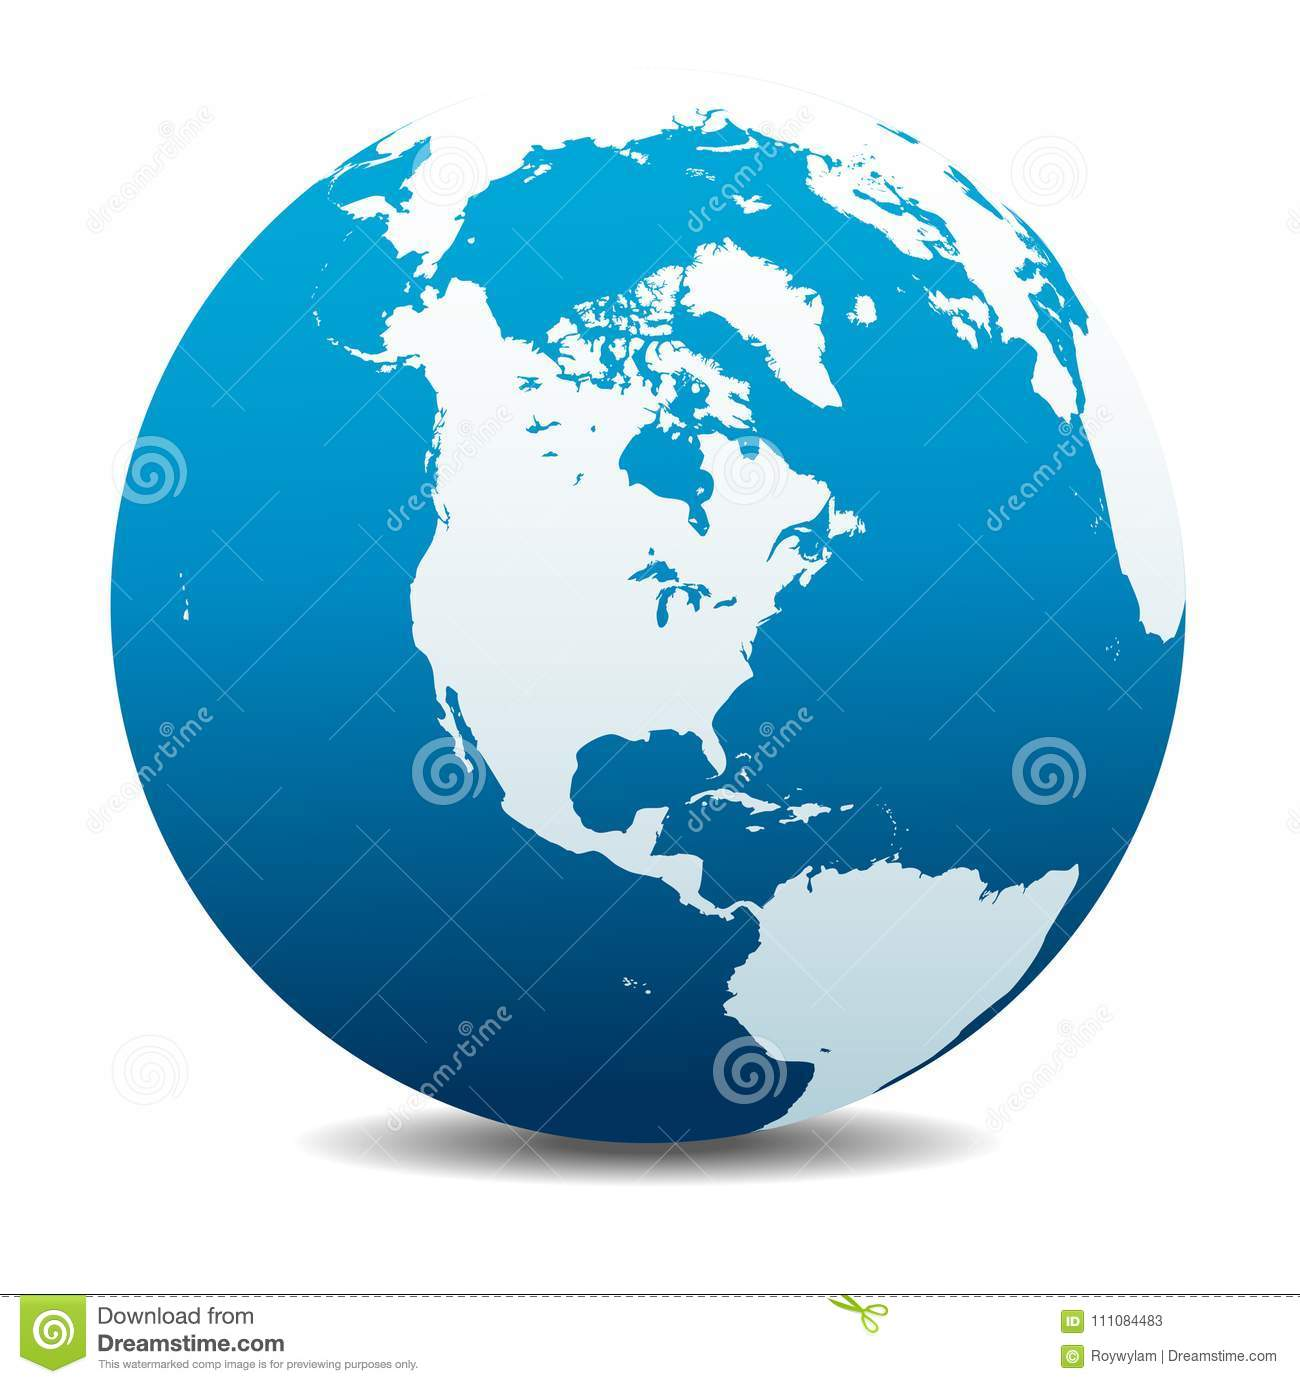 Usa Canada North South And Central America Global World Icon